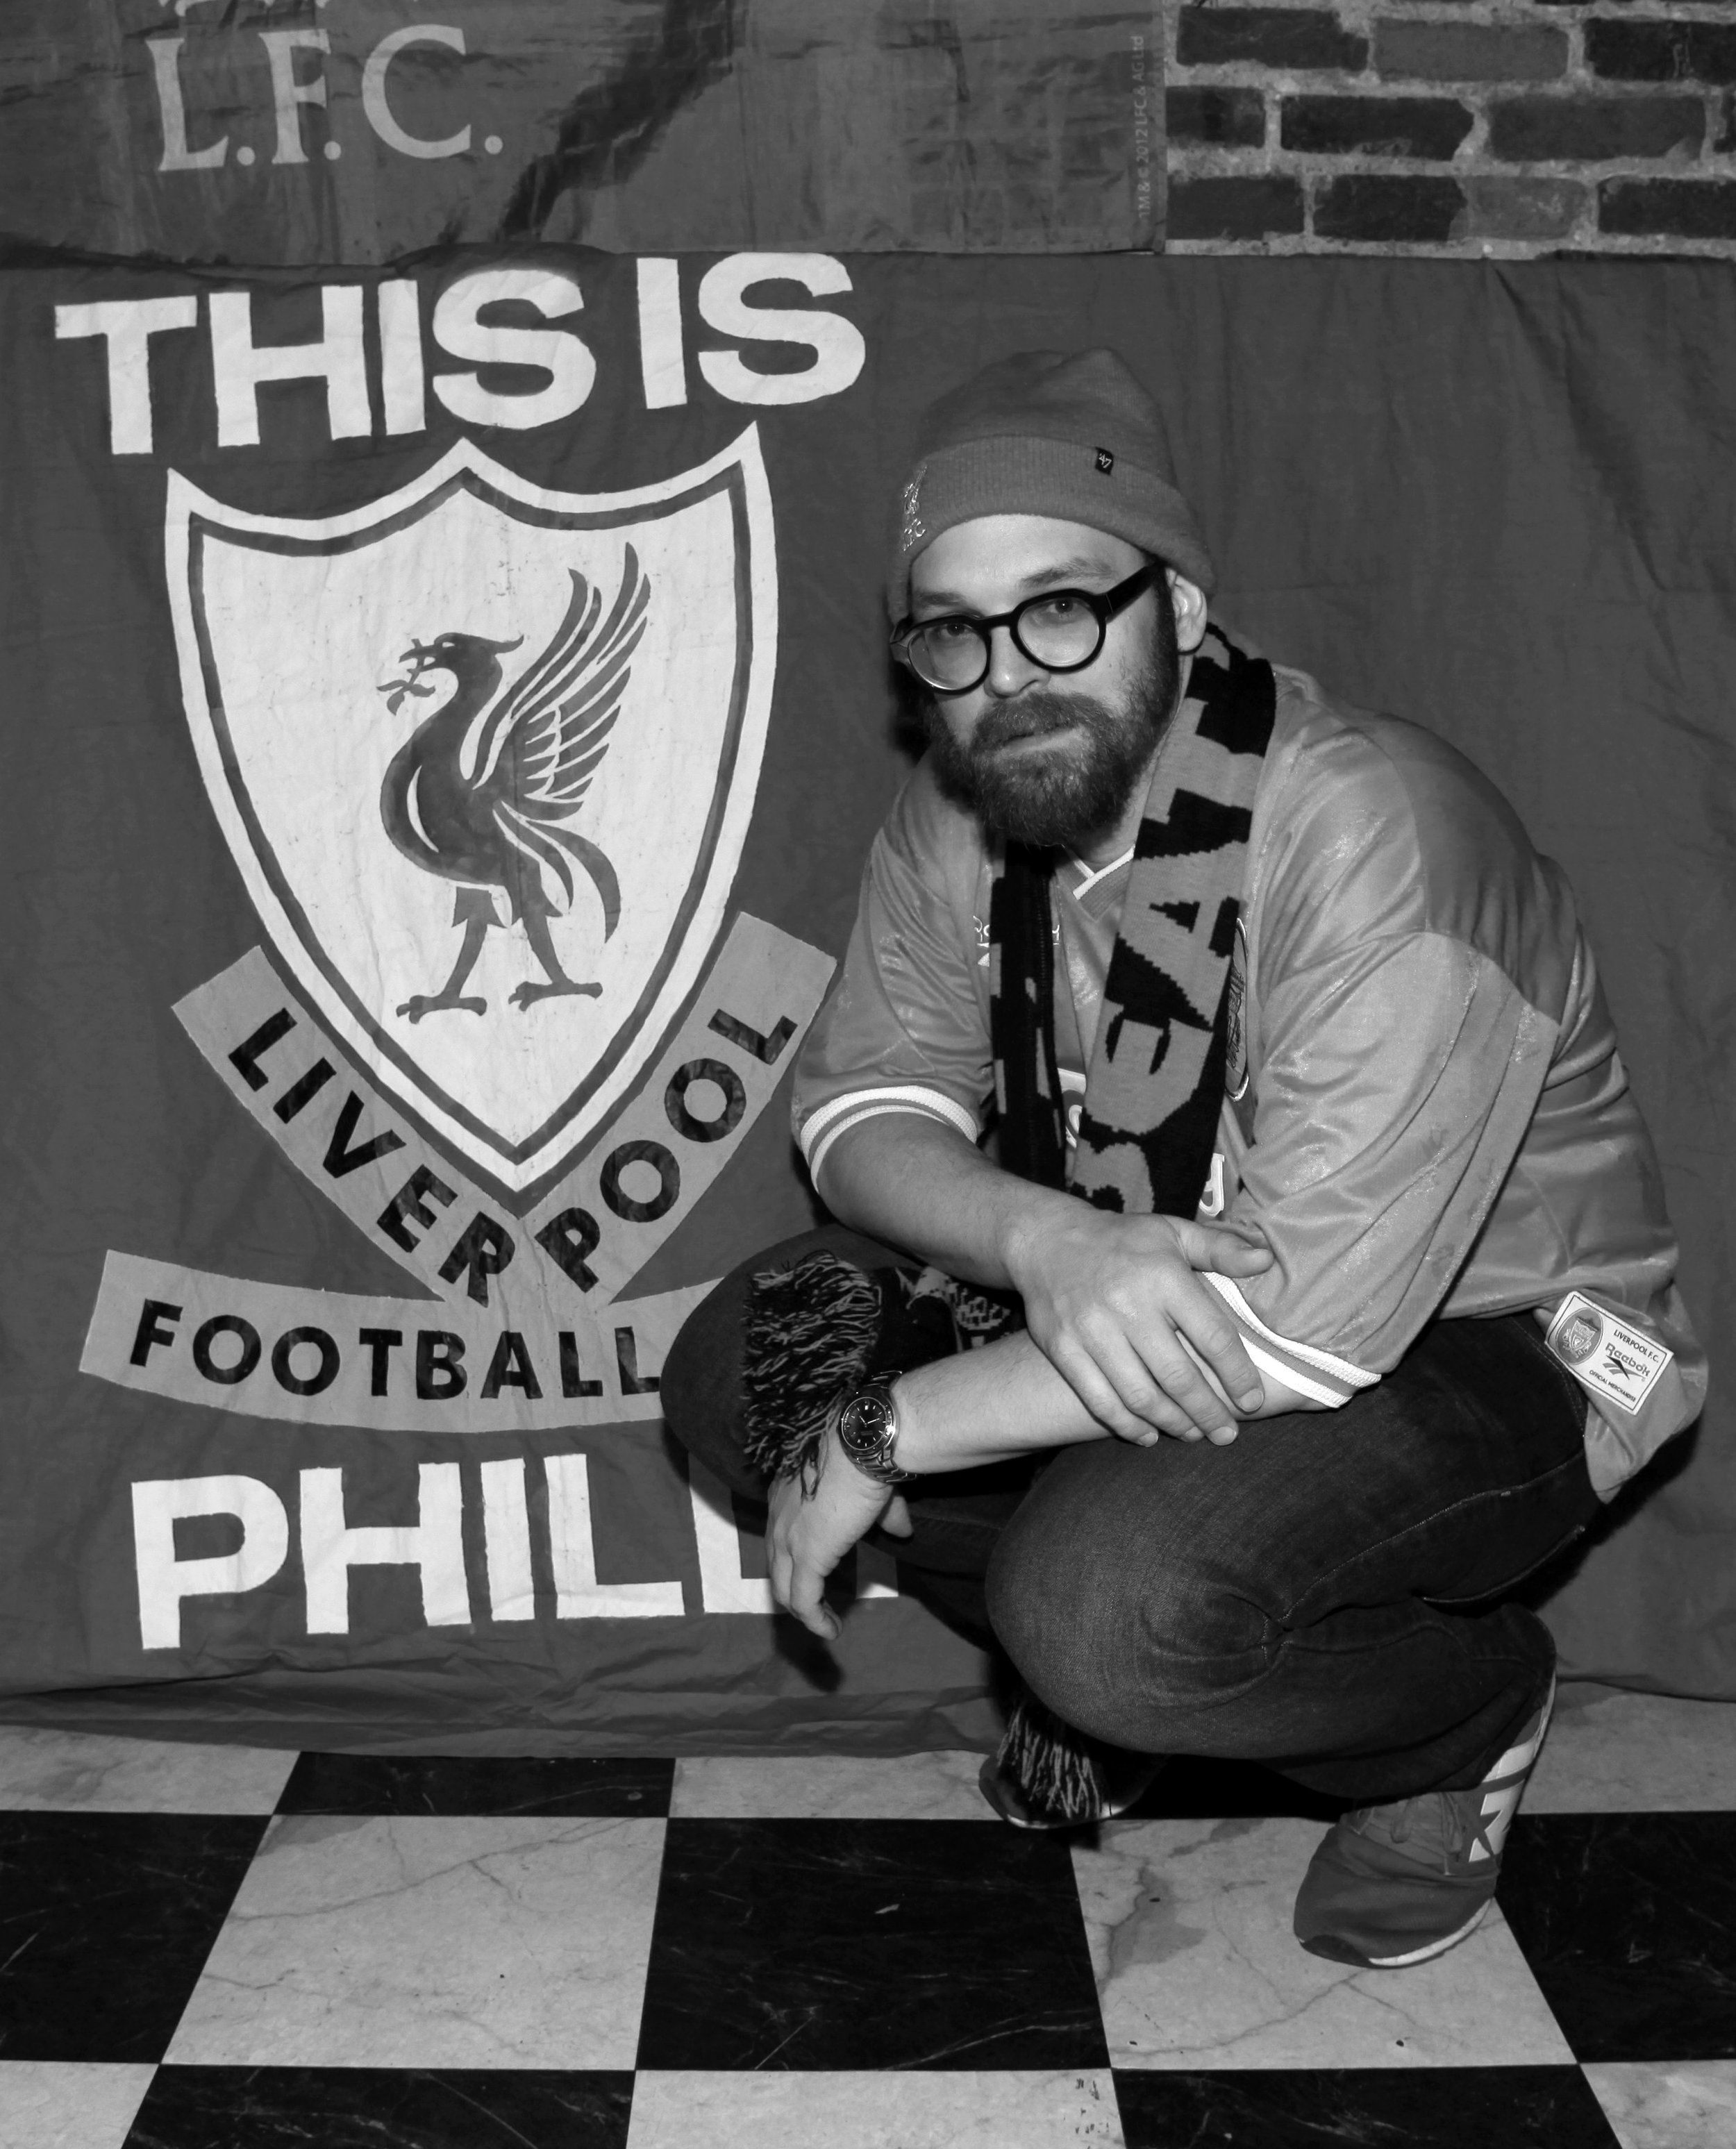 janette-beckman-liverpool-philly-lfc-supporters.jpg